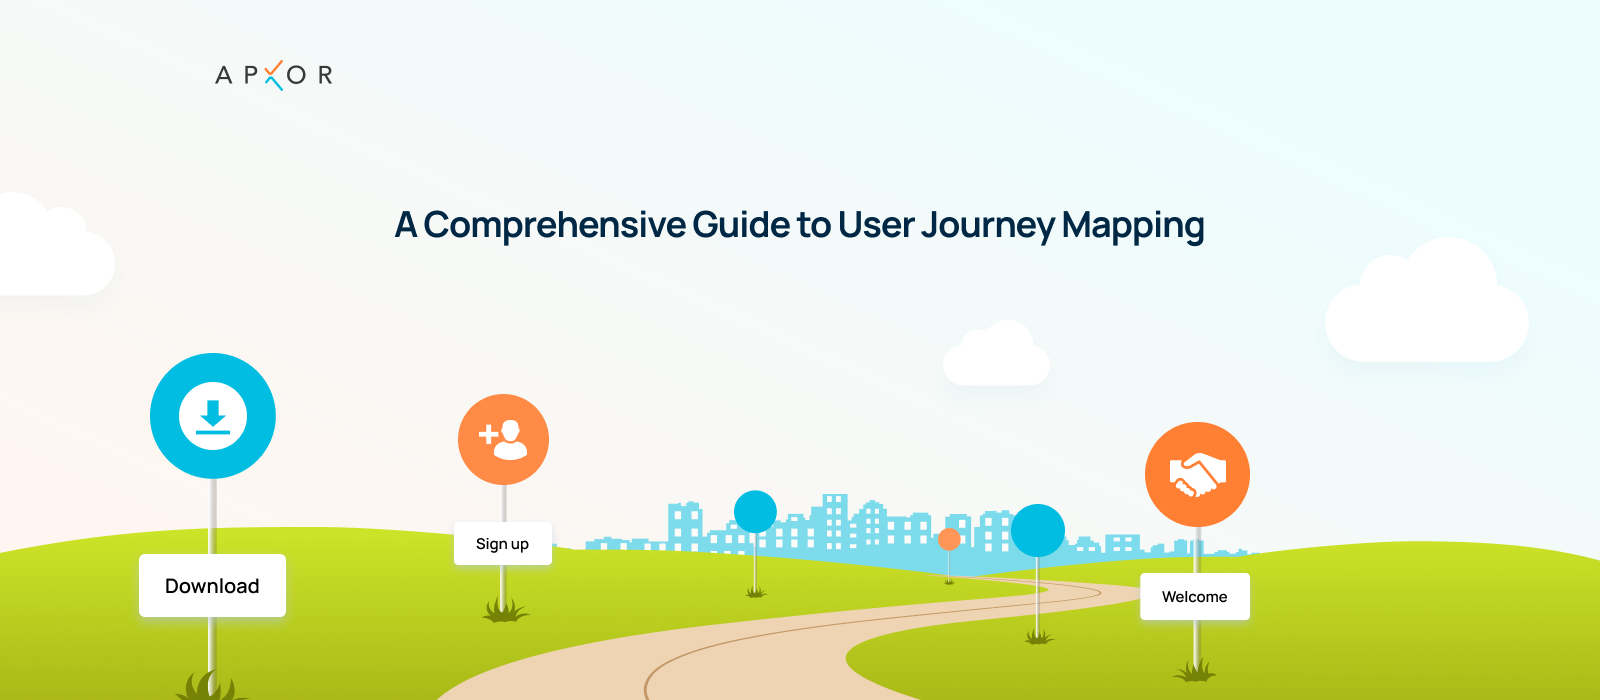 A Comprehensive Guide to User Journey Mapping